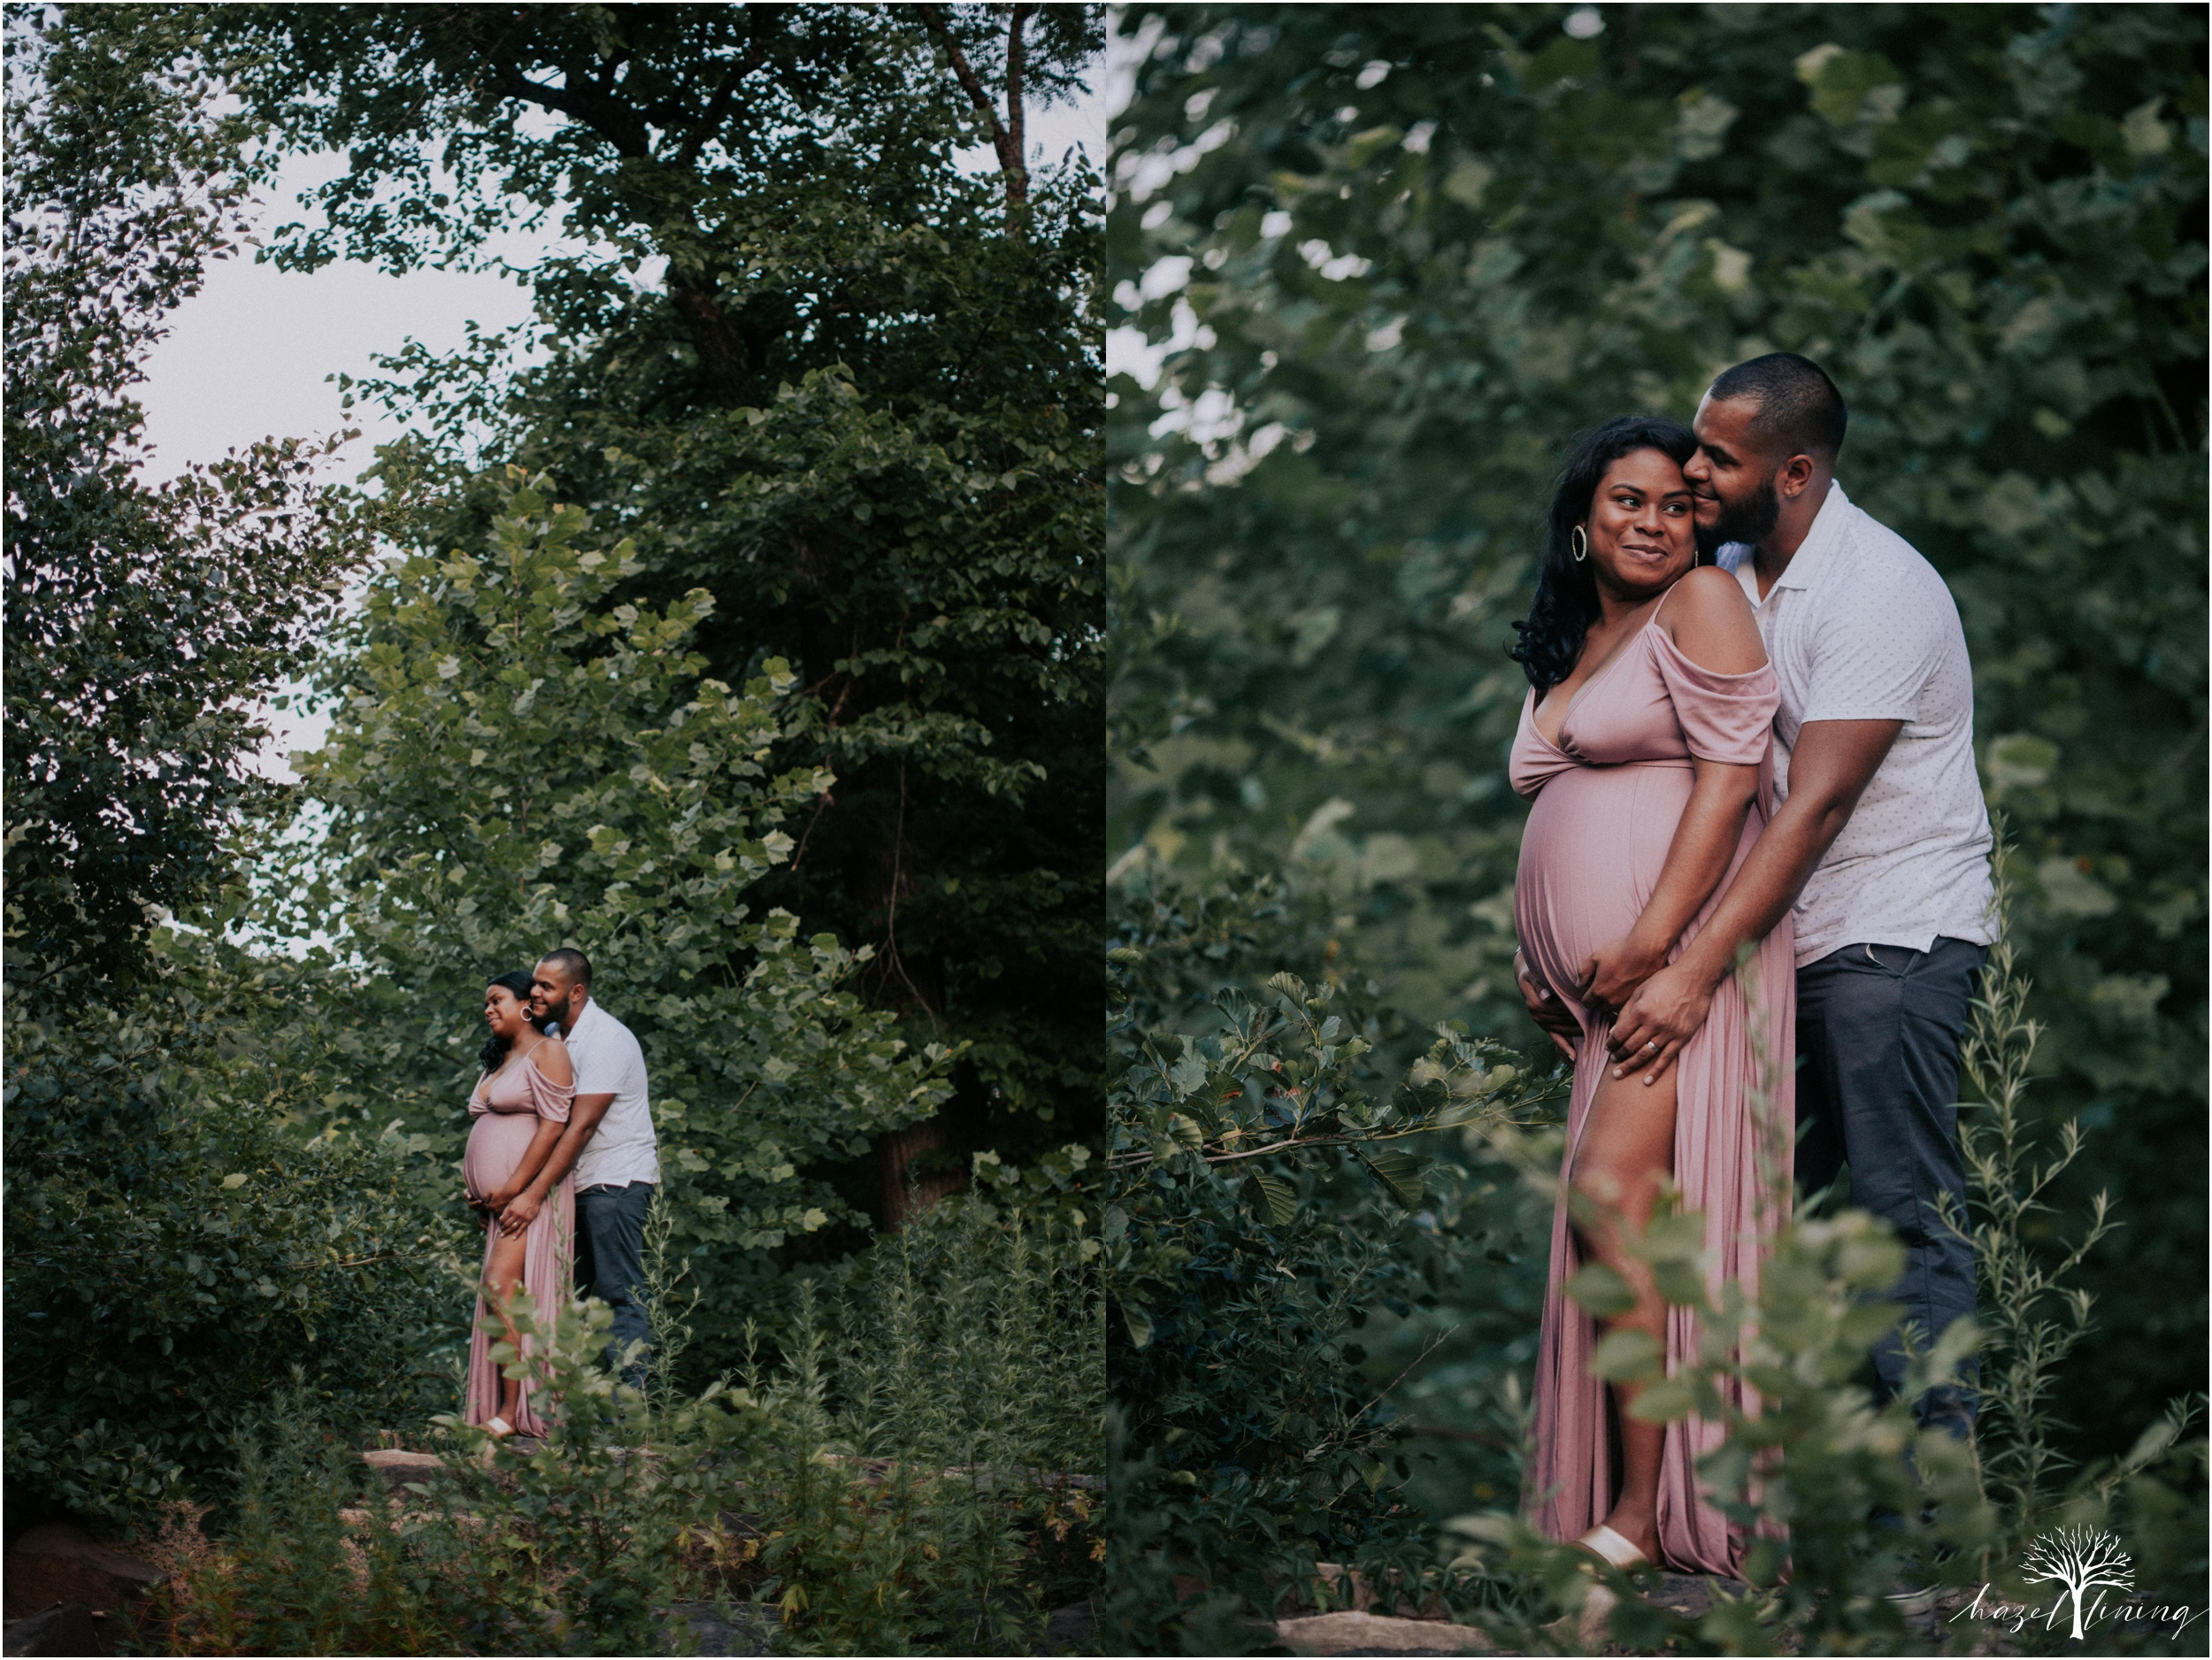 leyka-kristofer-chaparro-ralph-stover-state-park-summer-golden-hour-stream-maternity-session-hazel-lining-travel-wedding-elopement-photography_0015.jpg